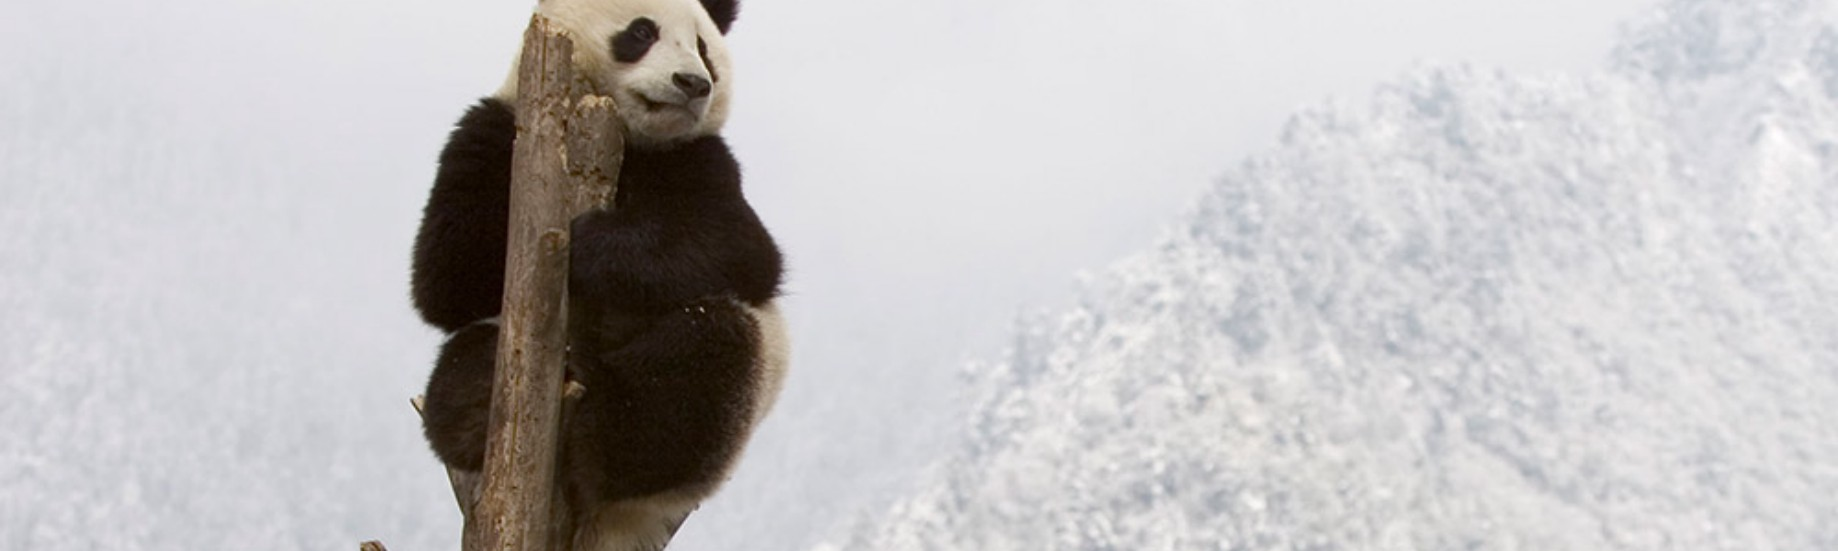 Pandas for time series data — tricks and tips - Adrian G